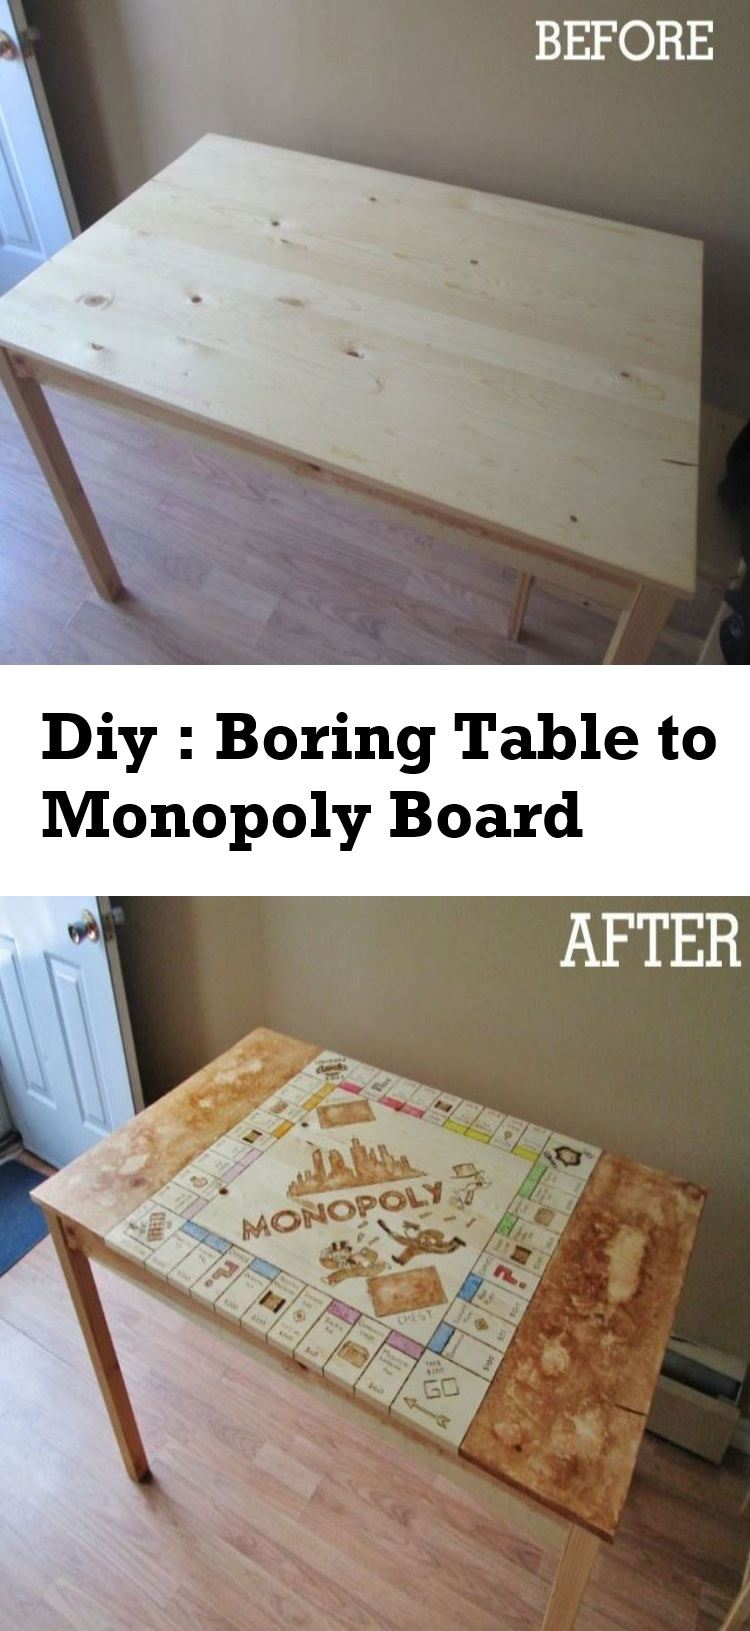 diy boring table to monopoly board